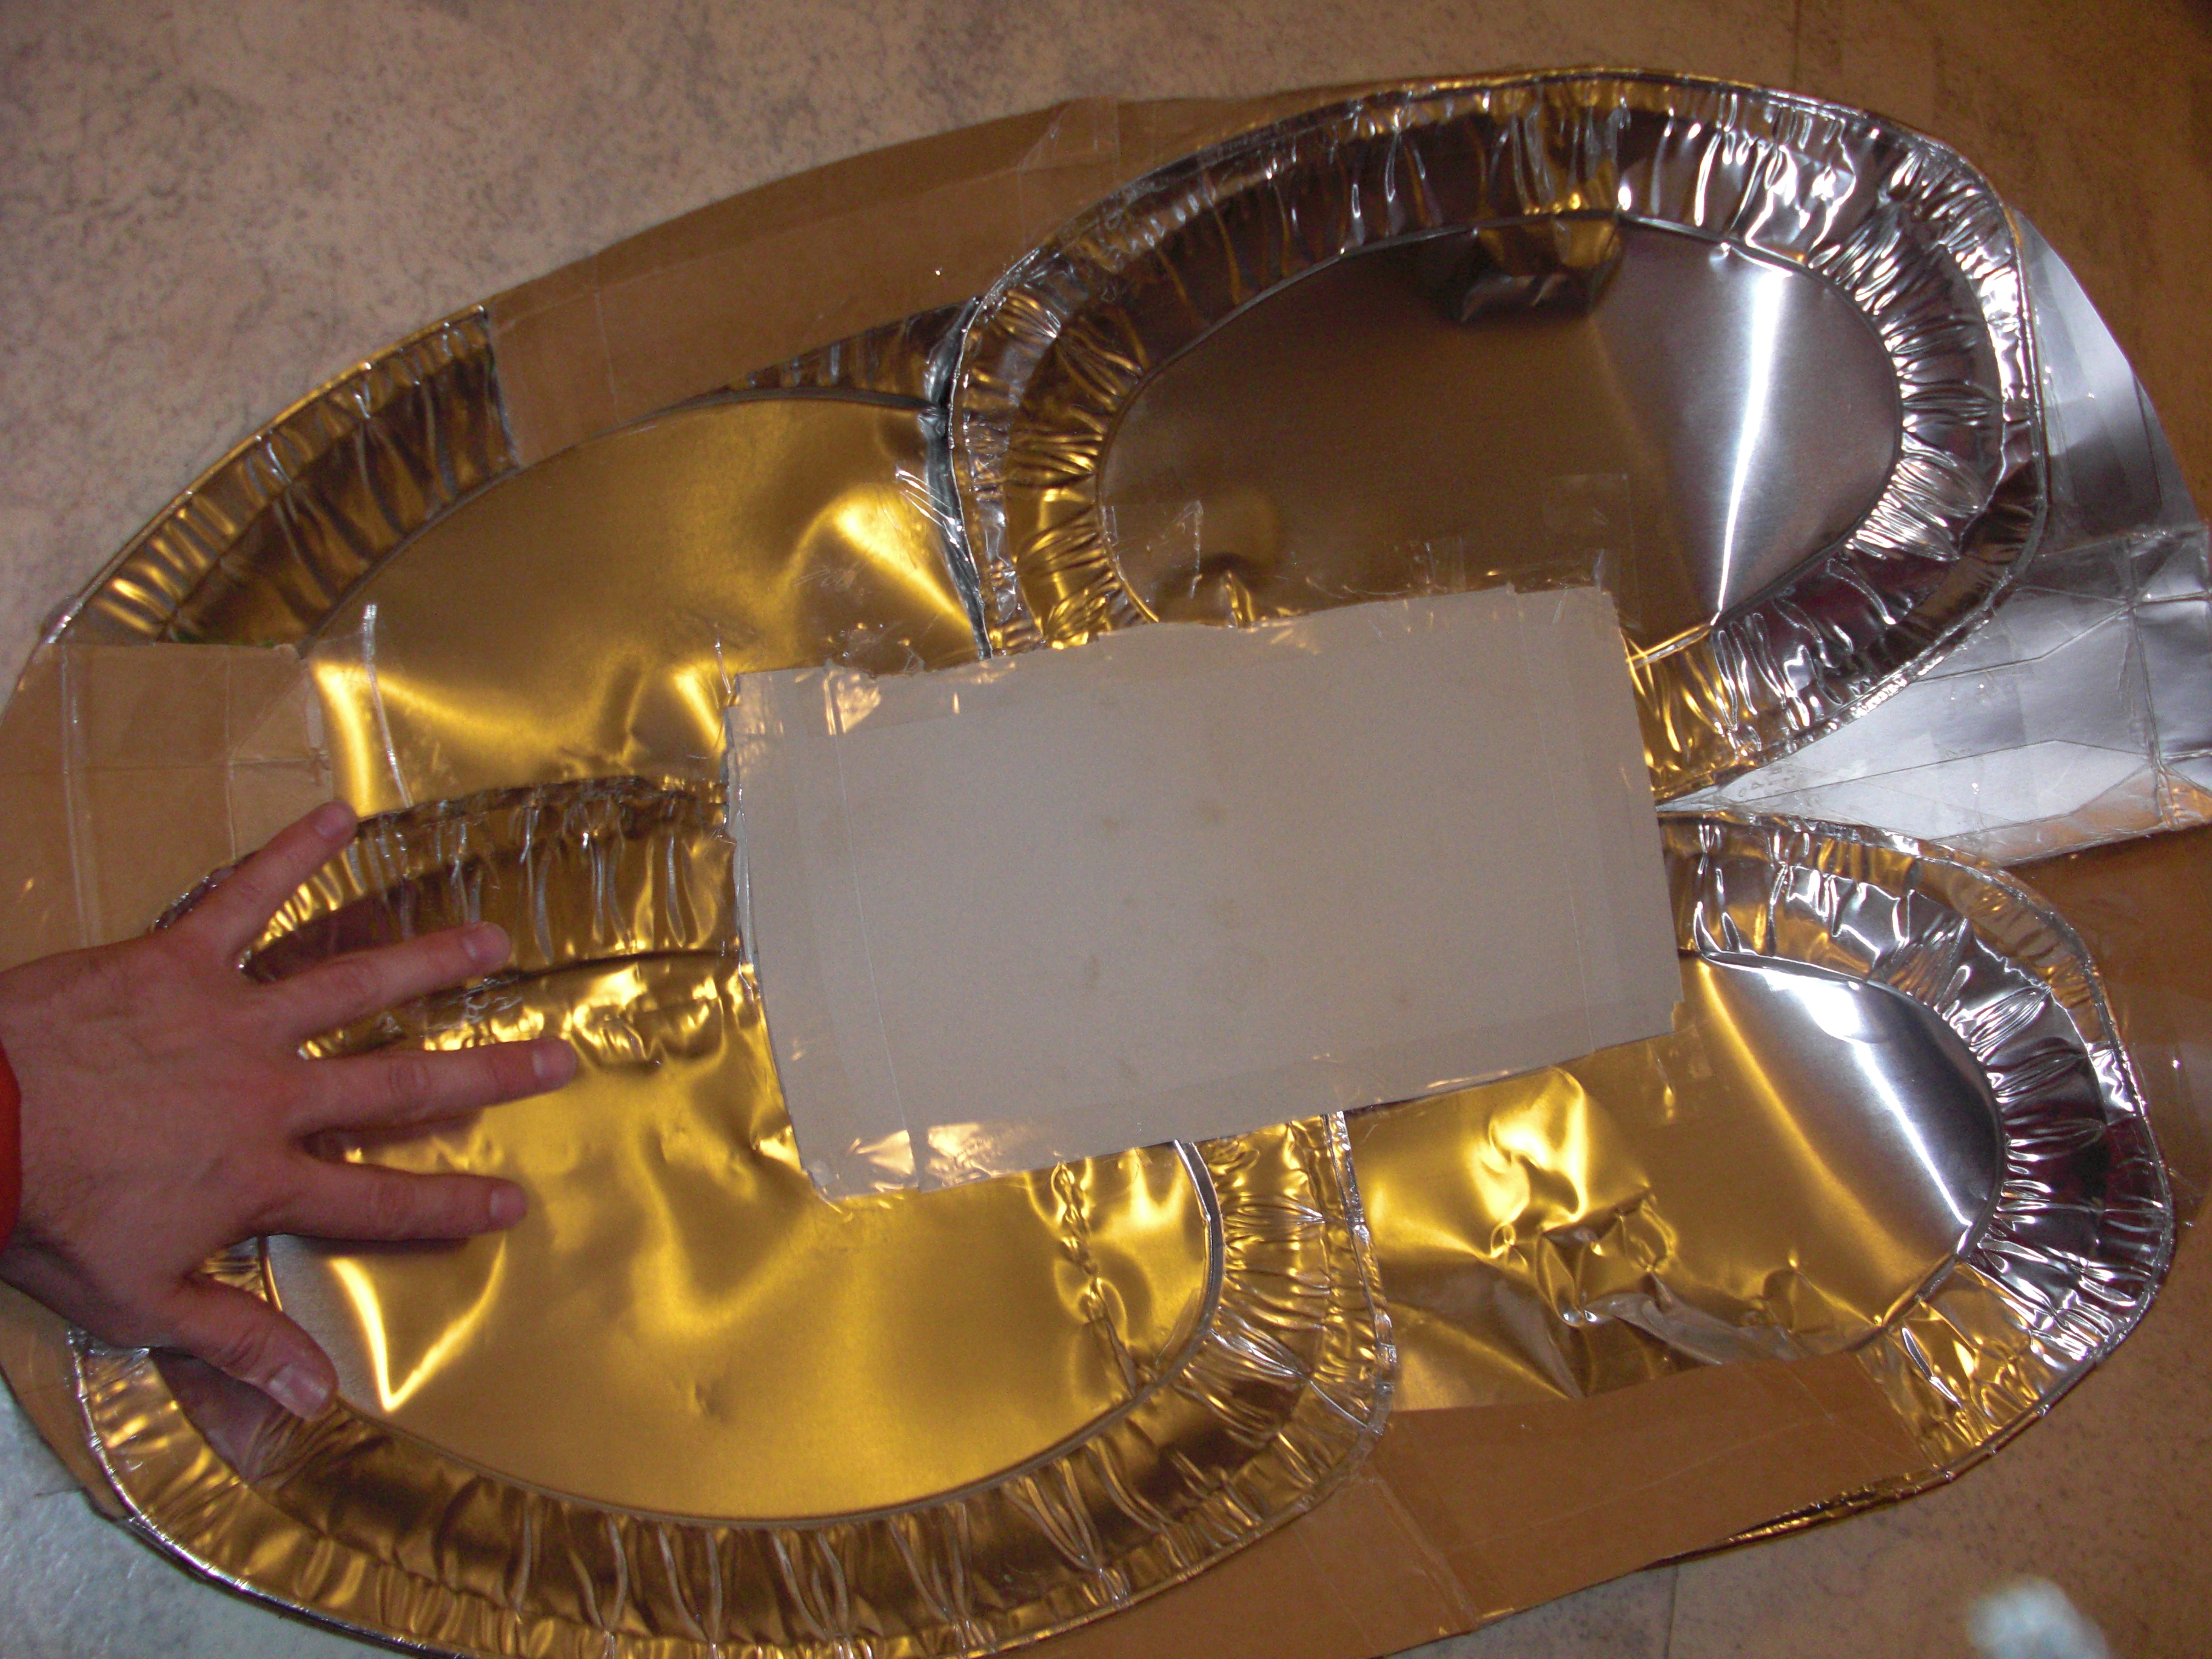 Picture of The Shell - Making the Mold